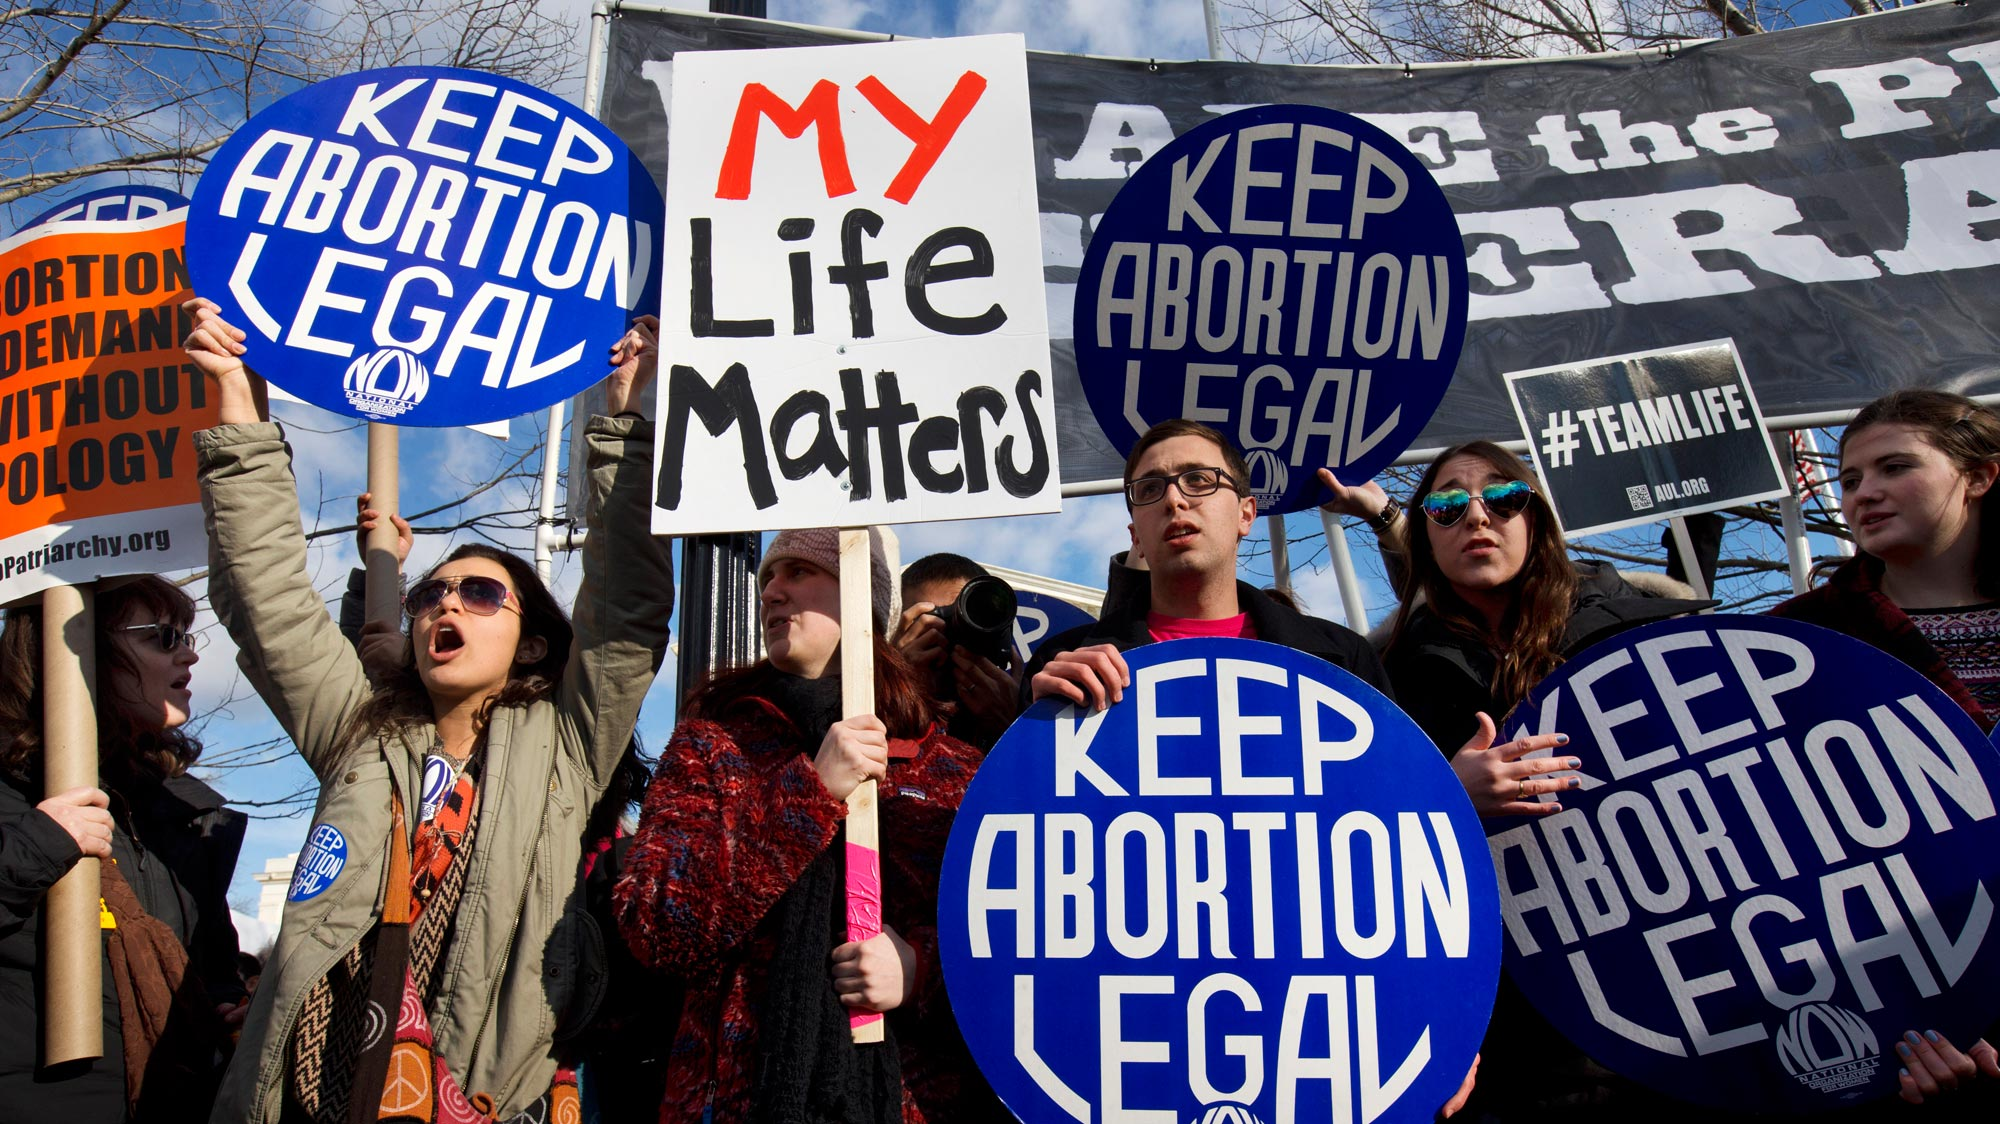 Judge Orders US Govt. to Assist Immigrant Teen Seeking Abortion